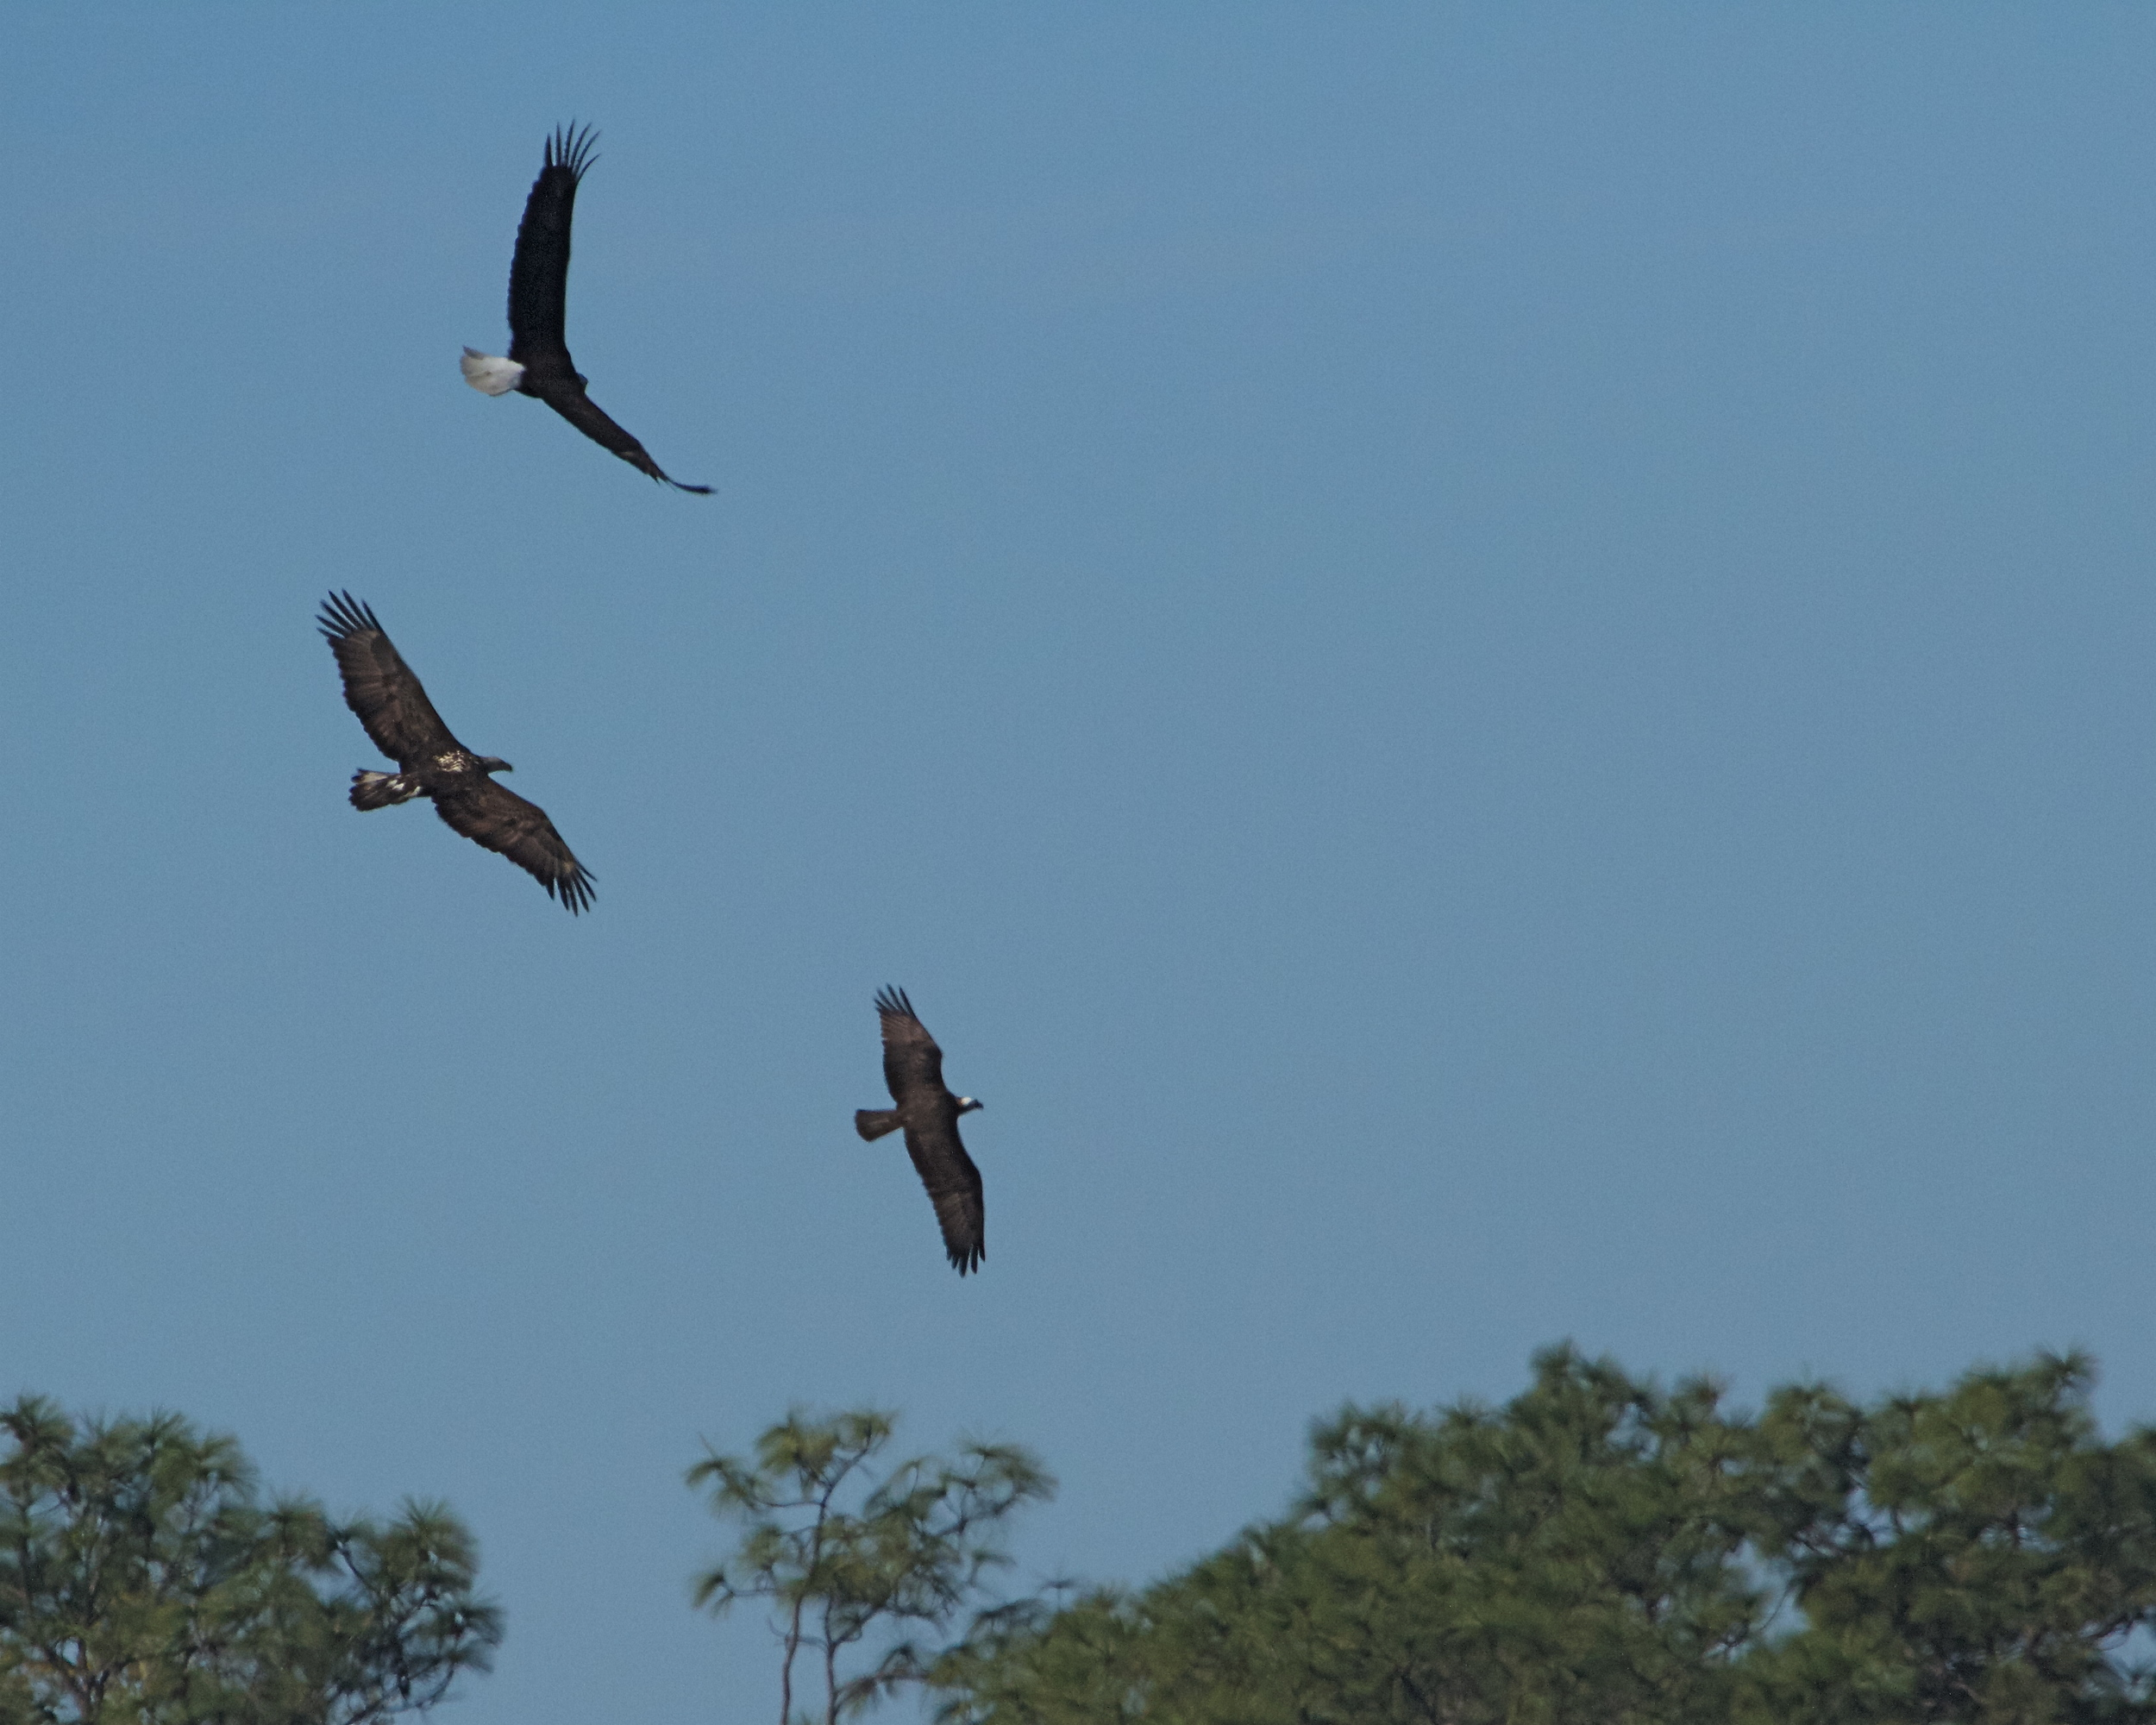 """Now Junior swoops in, """"Et too Brutus"""" seems to say the Osprey!"""